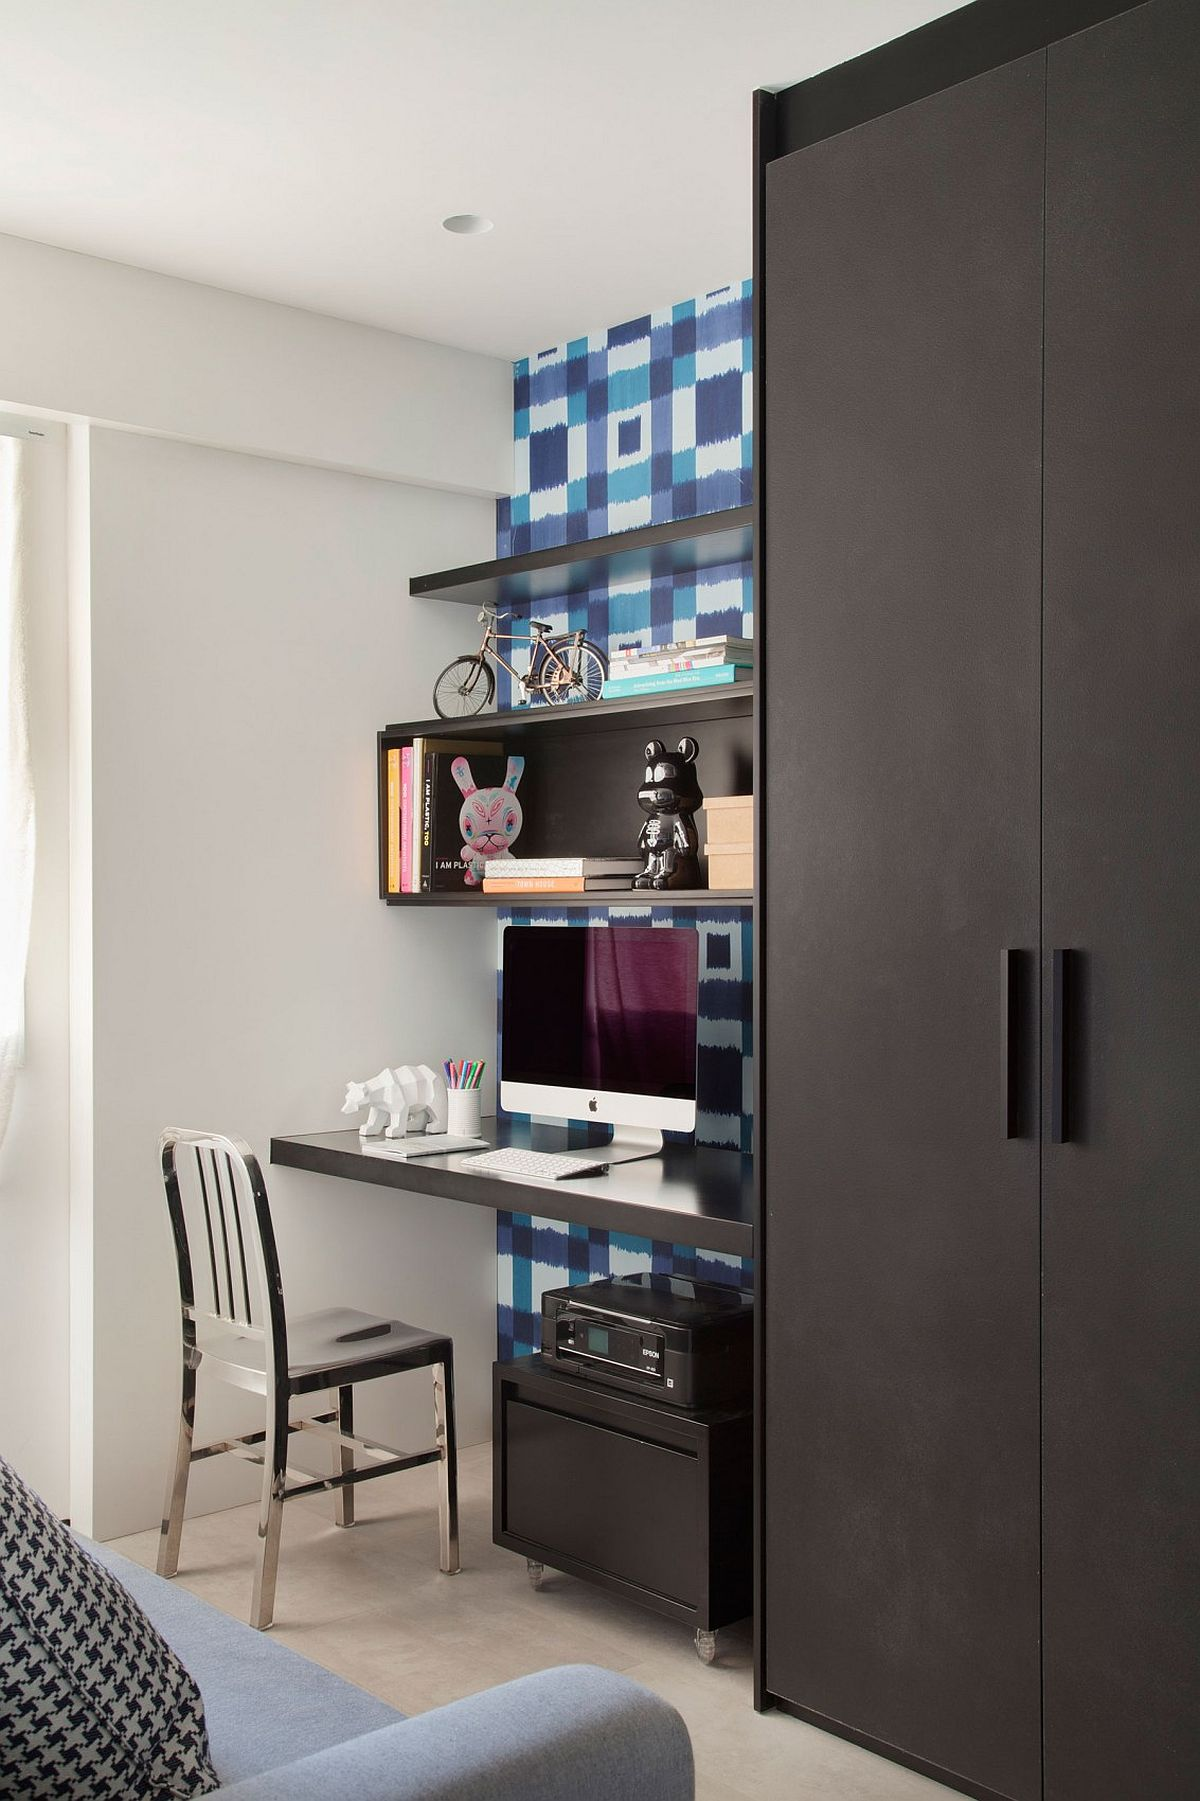 Bedroom corner is used to provide additinal displa and shelving options